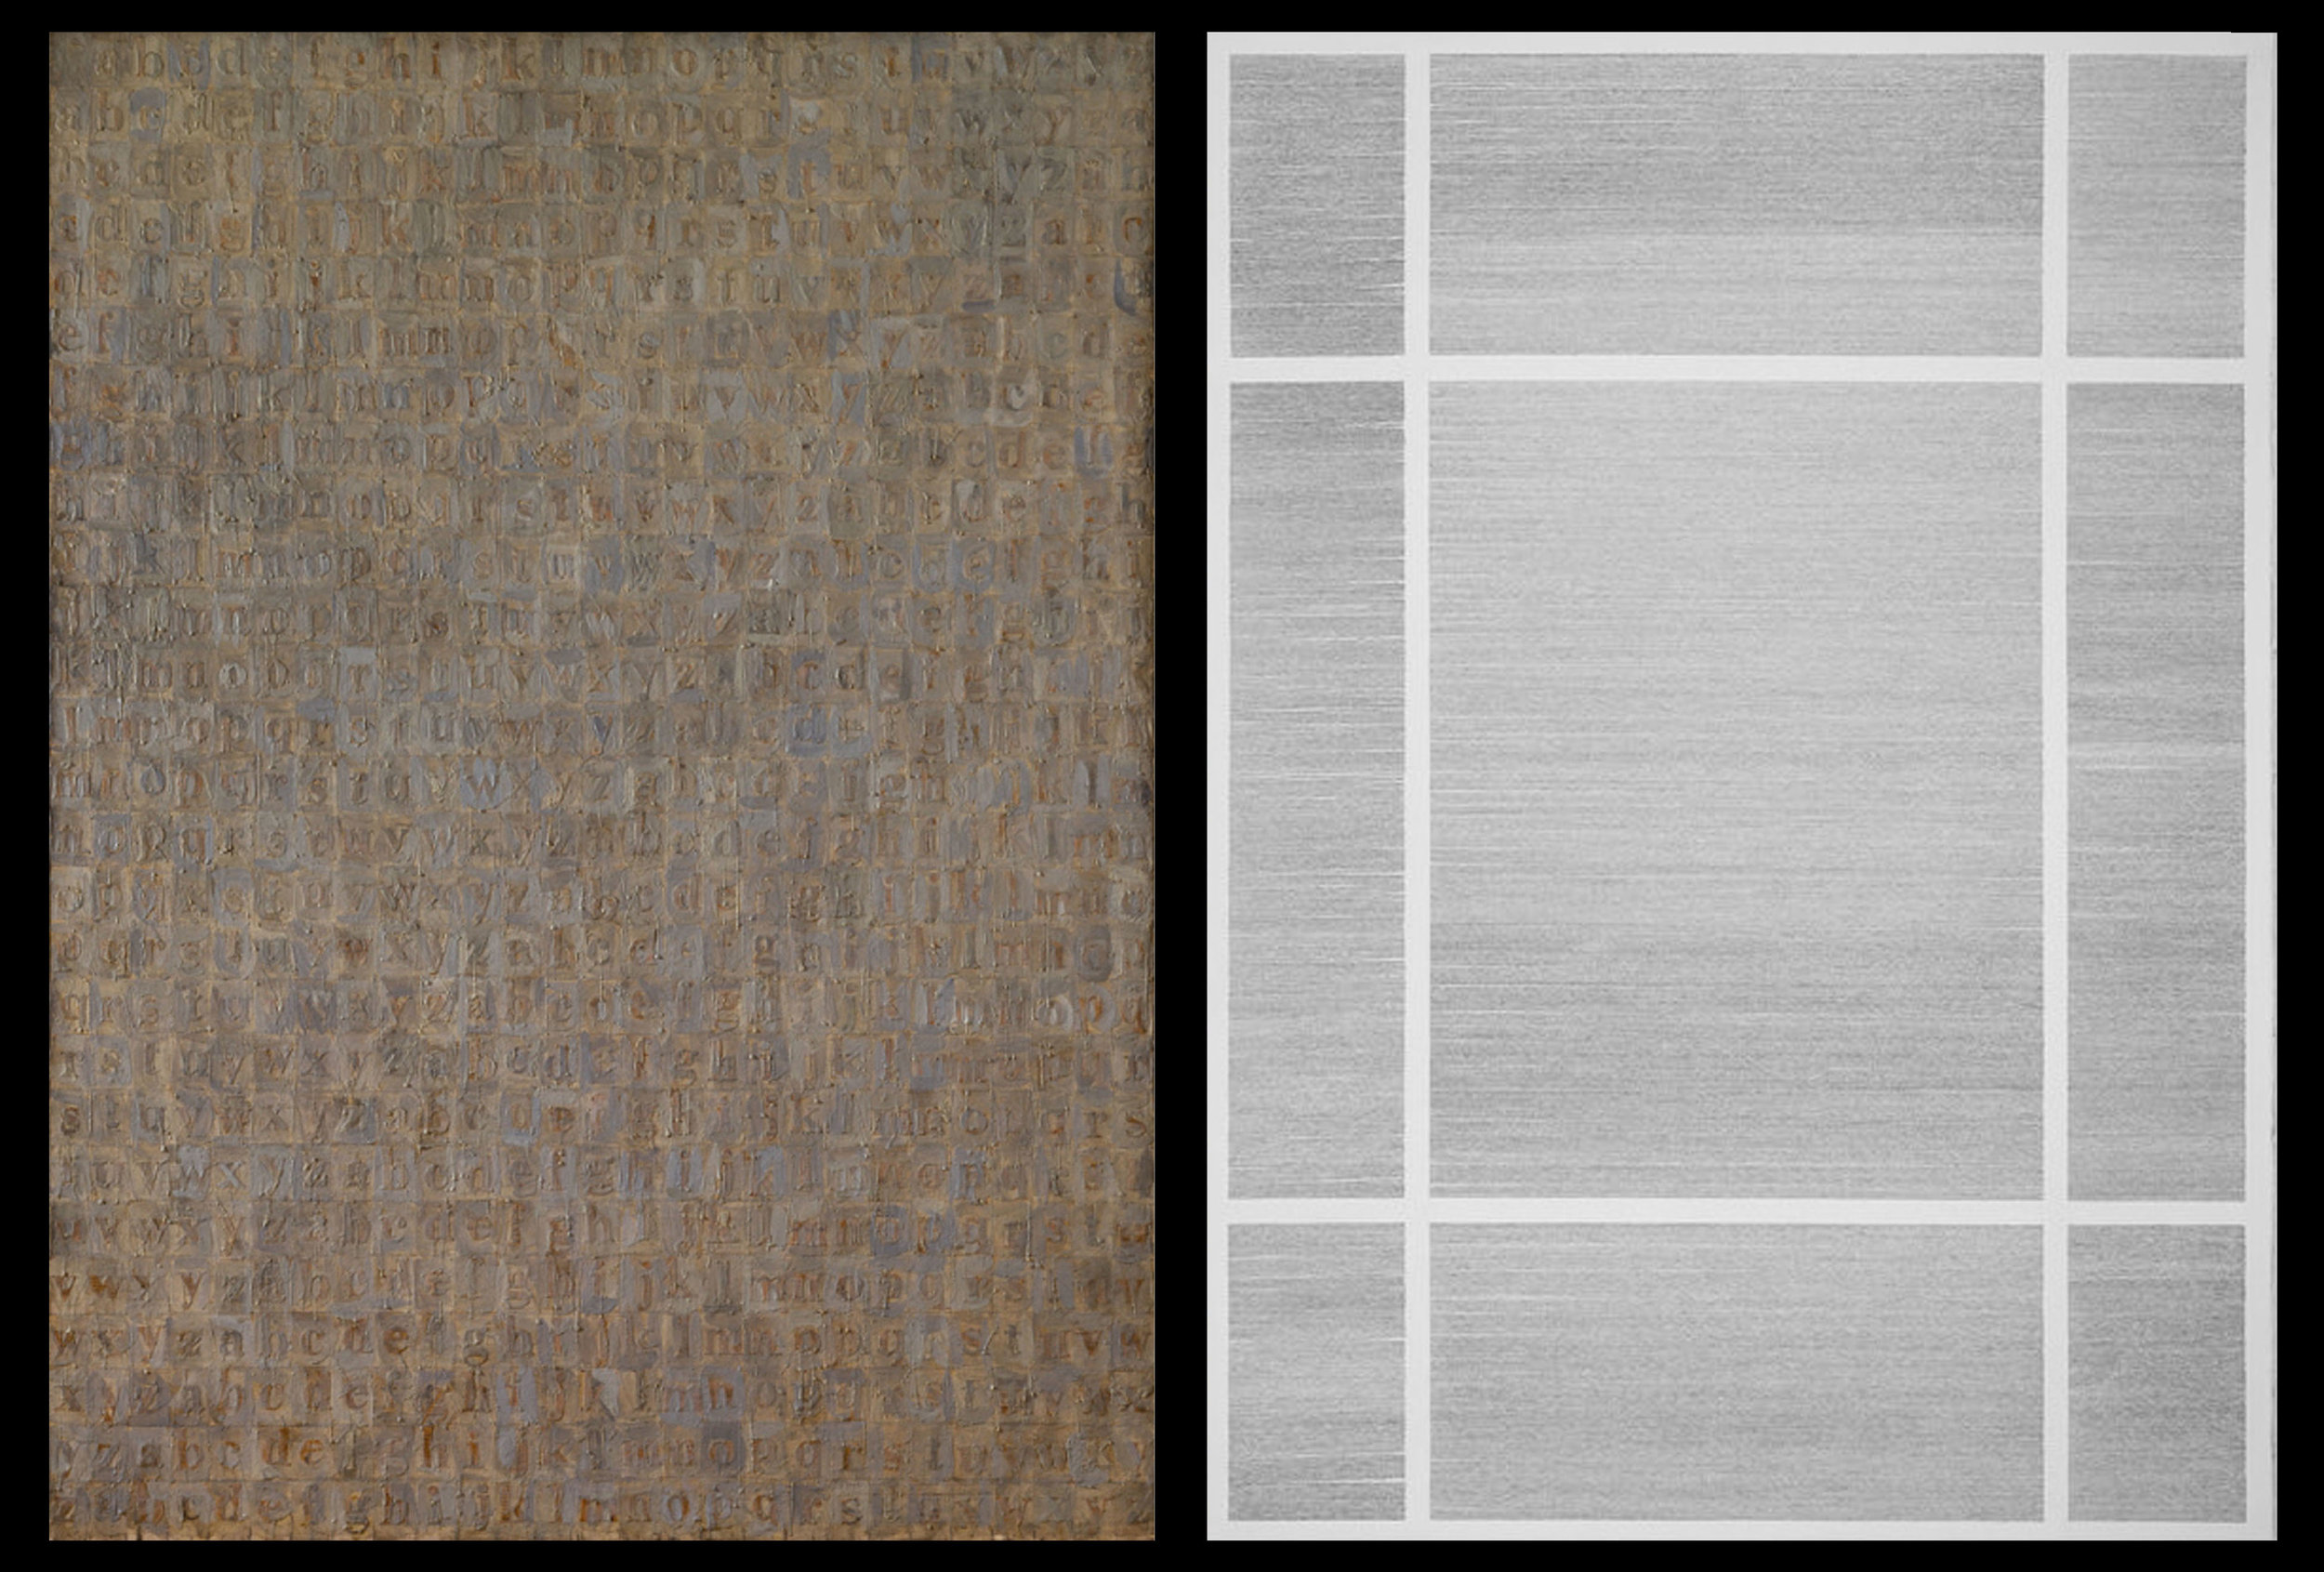 Left: Jasper Johns, American, born 1930  Gray Alphabets  Beeswax and oil on newspaper and paper on canvas 1956 66 1/8 × 48 ¾ in. Menil Collection, Houston, Texas  Right: Louis Watts, American, born 1984  Carbon Alphabets   (The Ship Minerva)  Graphite on paper 2015-2018 60 x 47 1/2 in. Private Collection, New York, New York